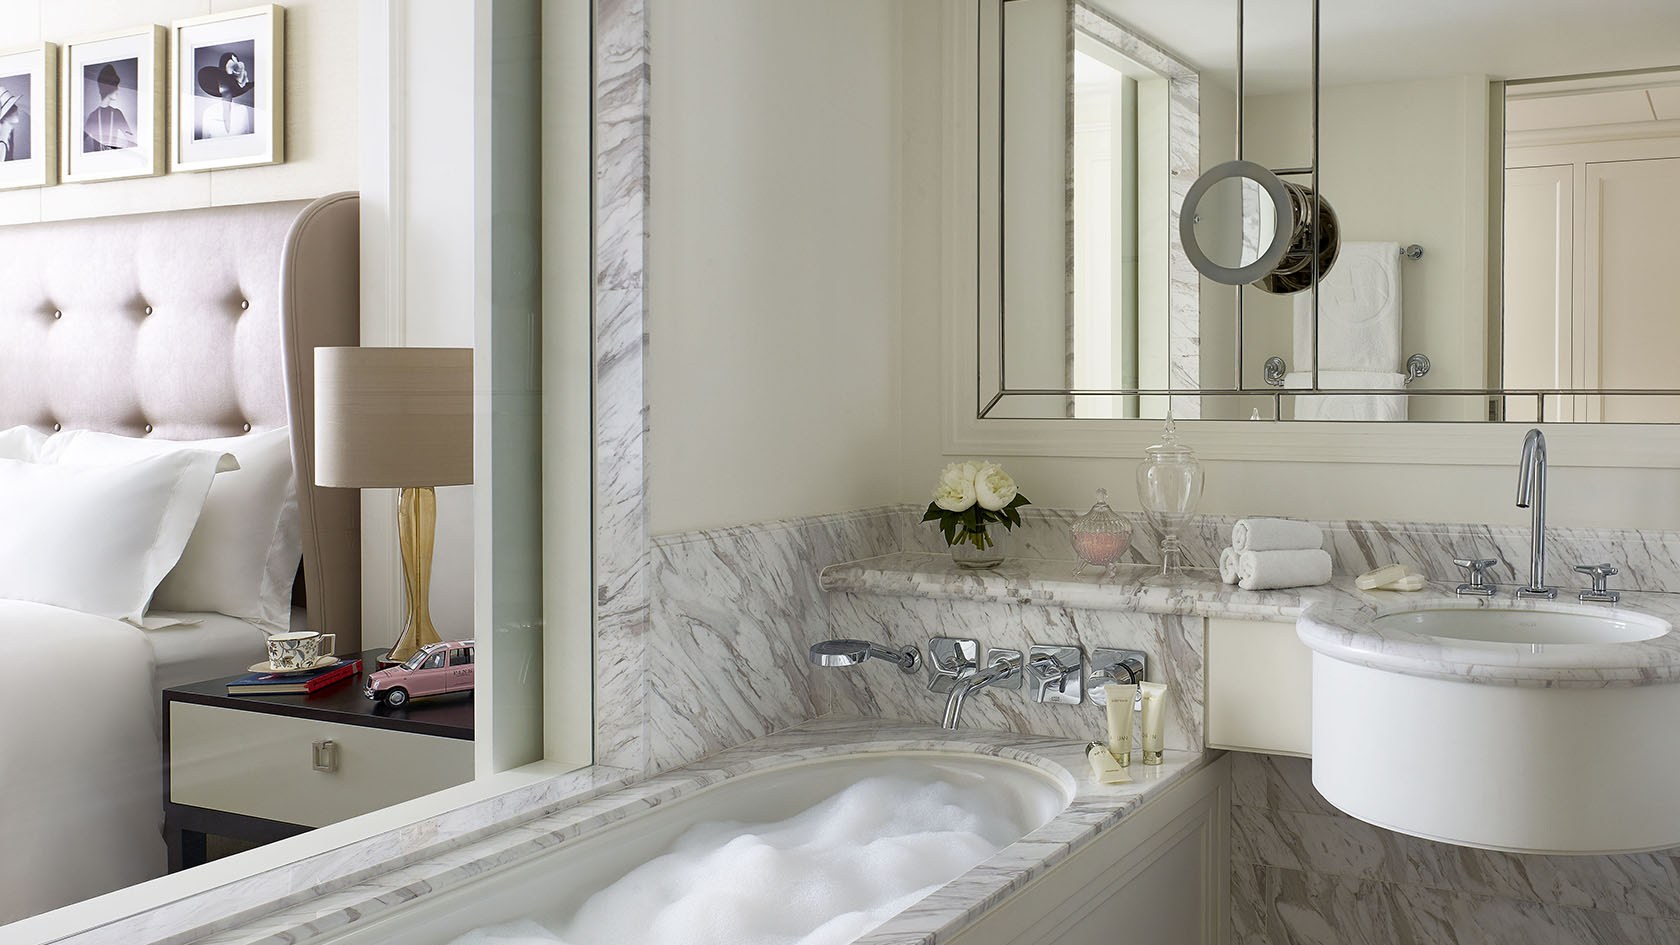 Bathroom in a standard room at the Langham